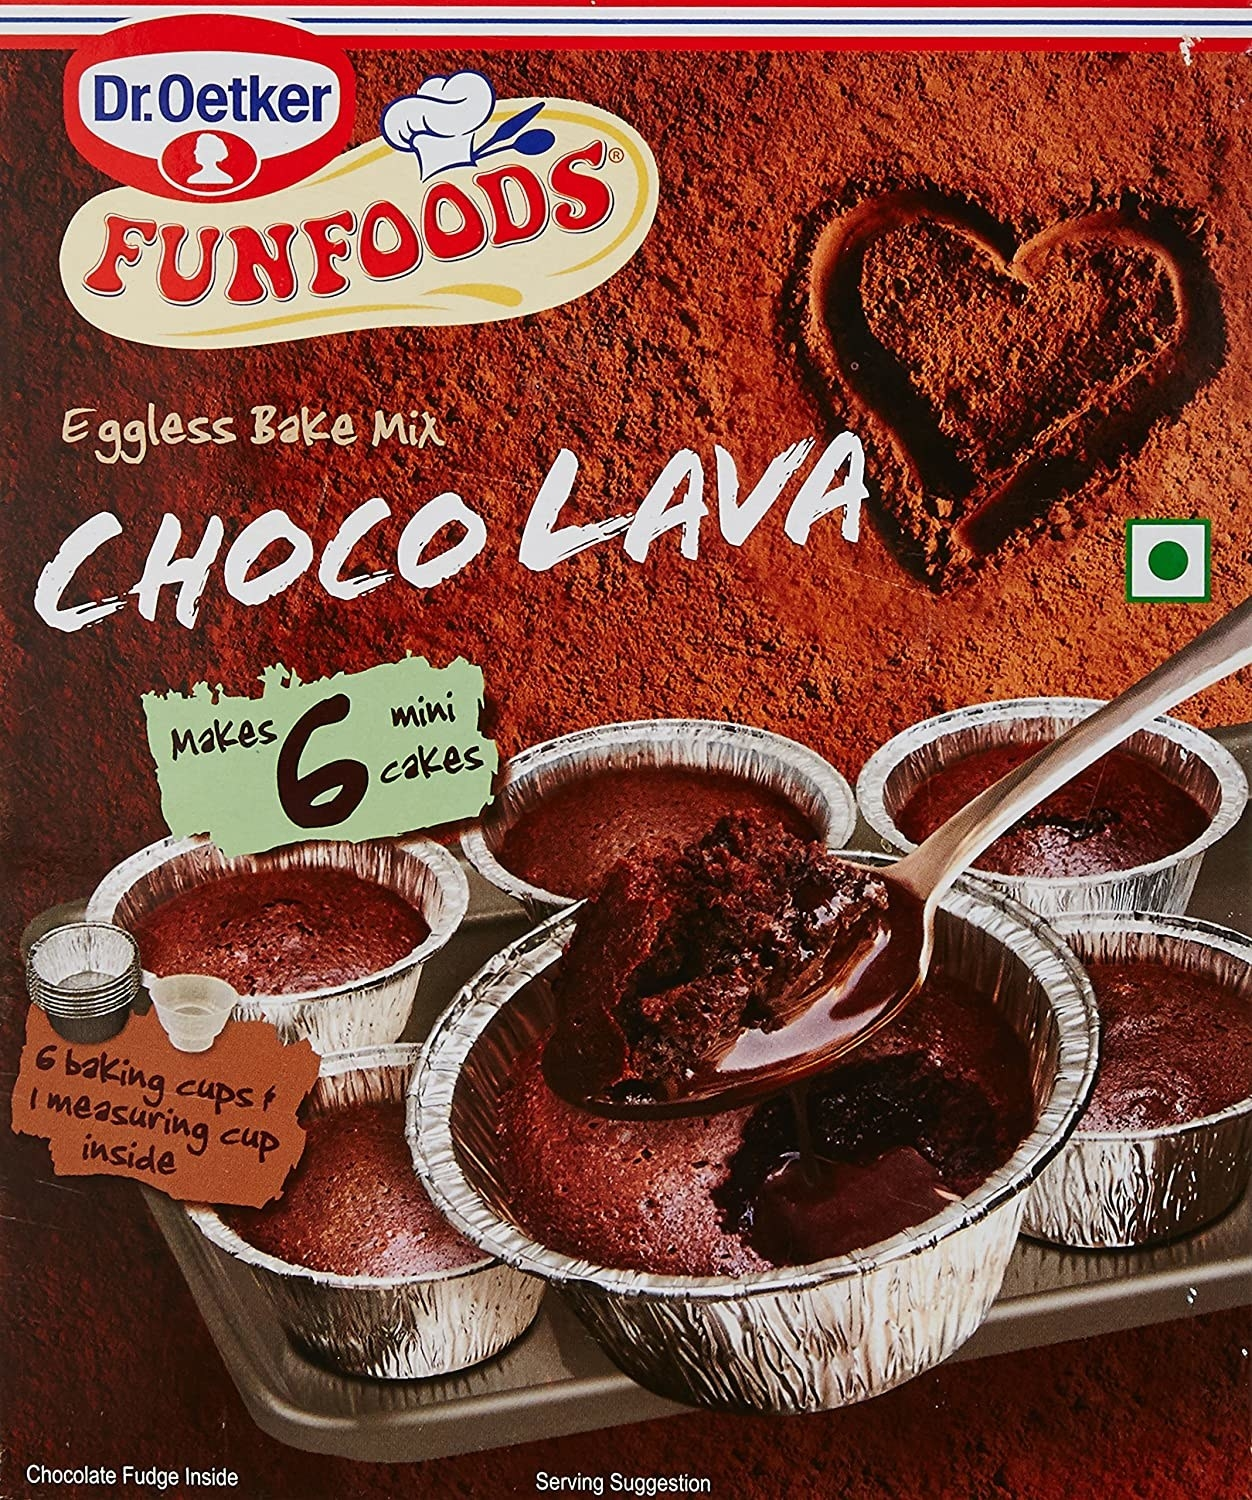 Choco lava cake packaging